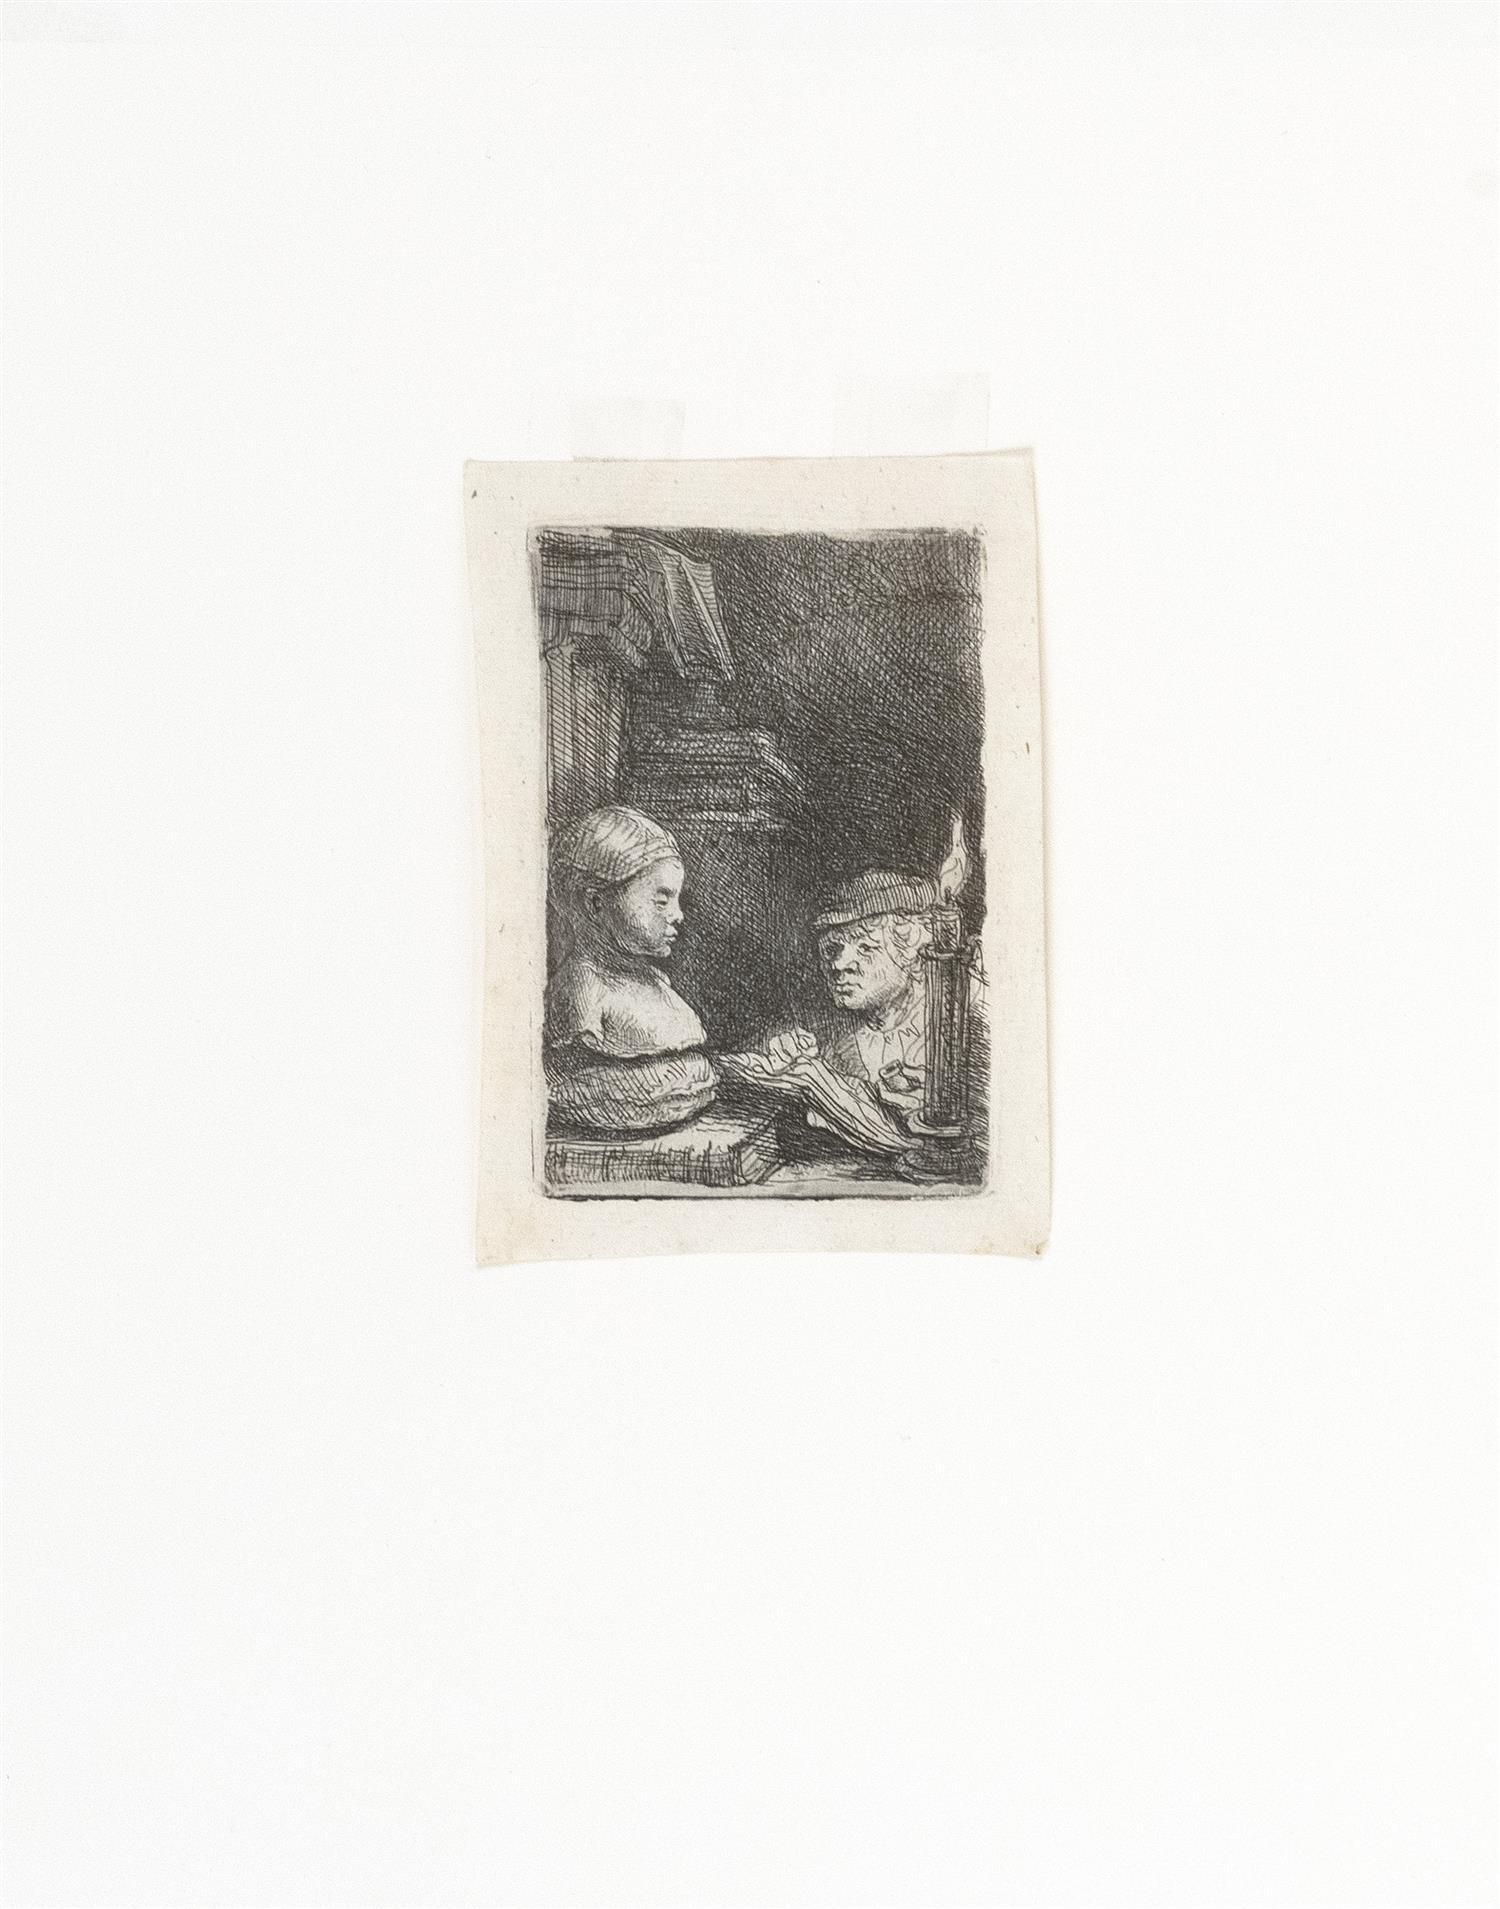 """REMBRANDT VAN RIJN, Holland, 1606-1669, """"Man Drawing from a Cast""""., Etching on laid paper, plate 95mm x 65mm. Sheet size 110mm x 78m..."""